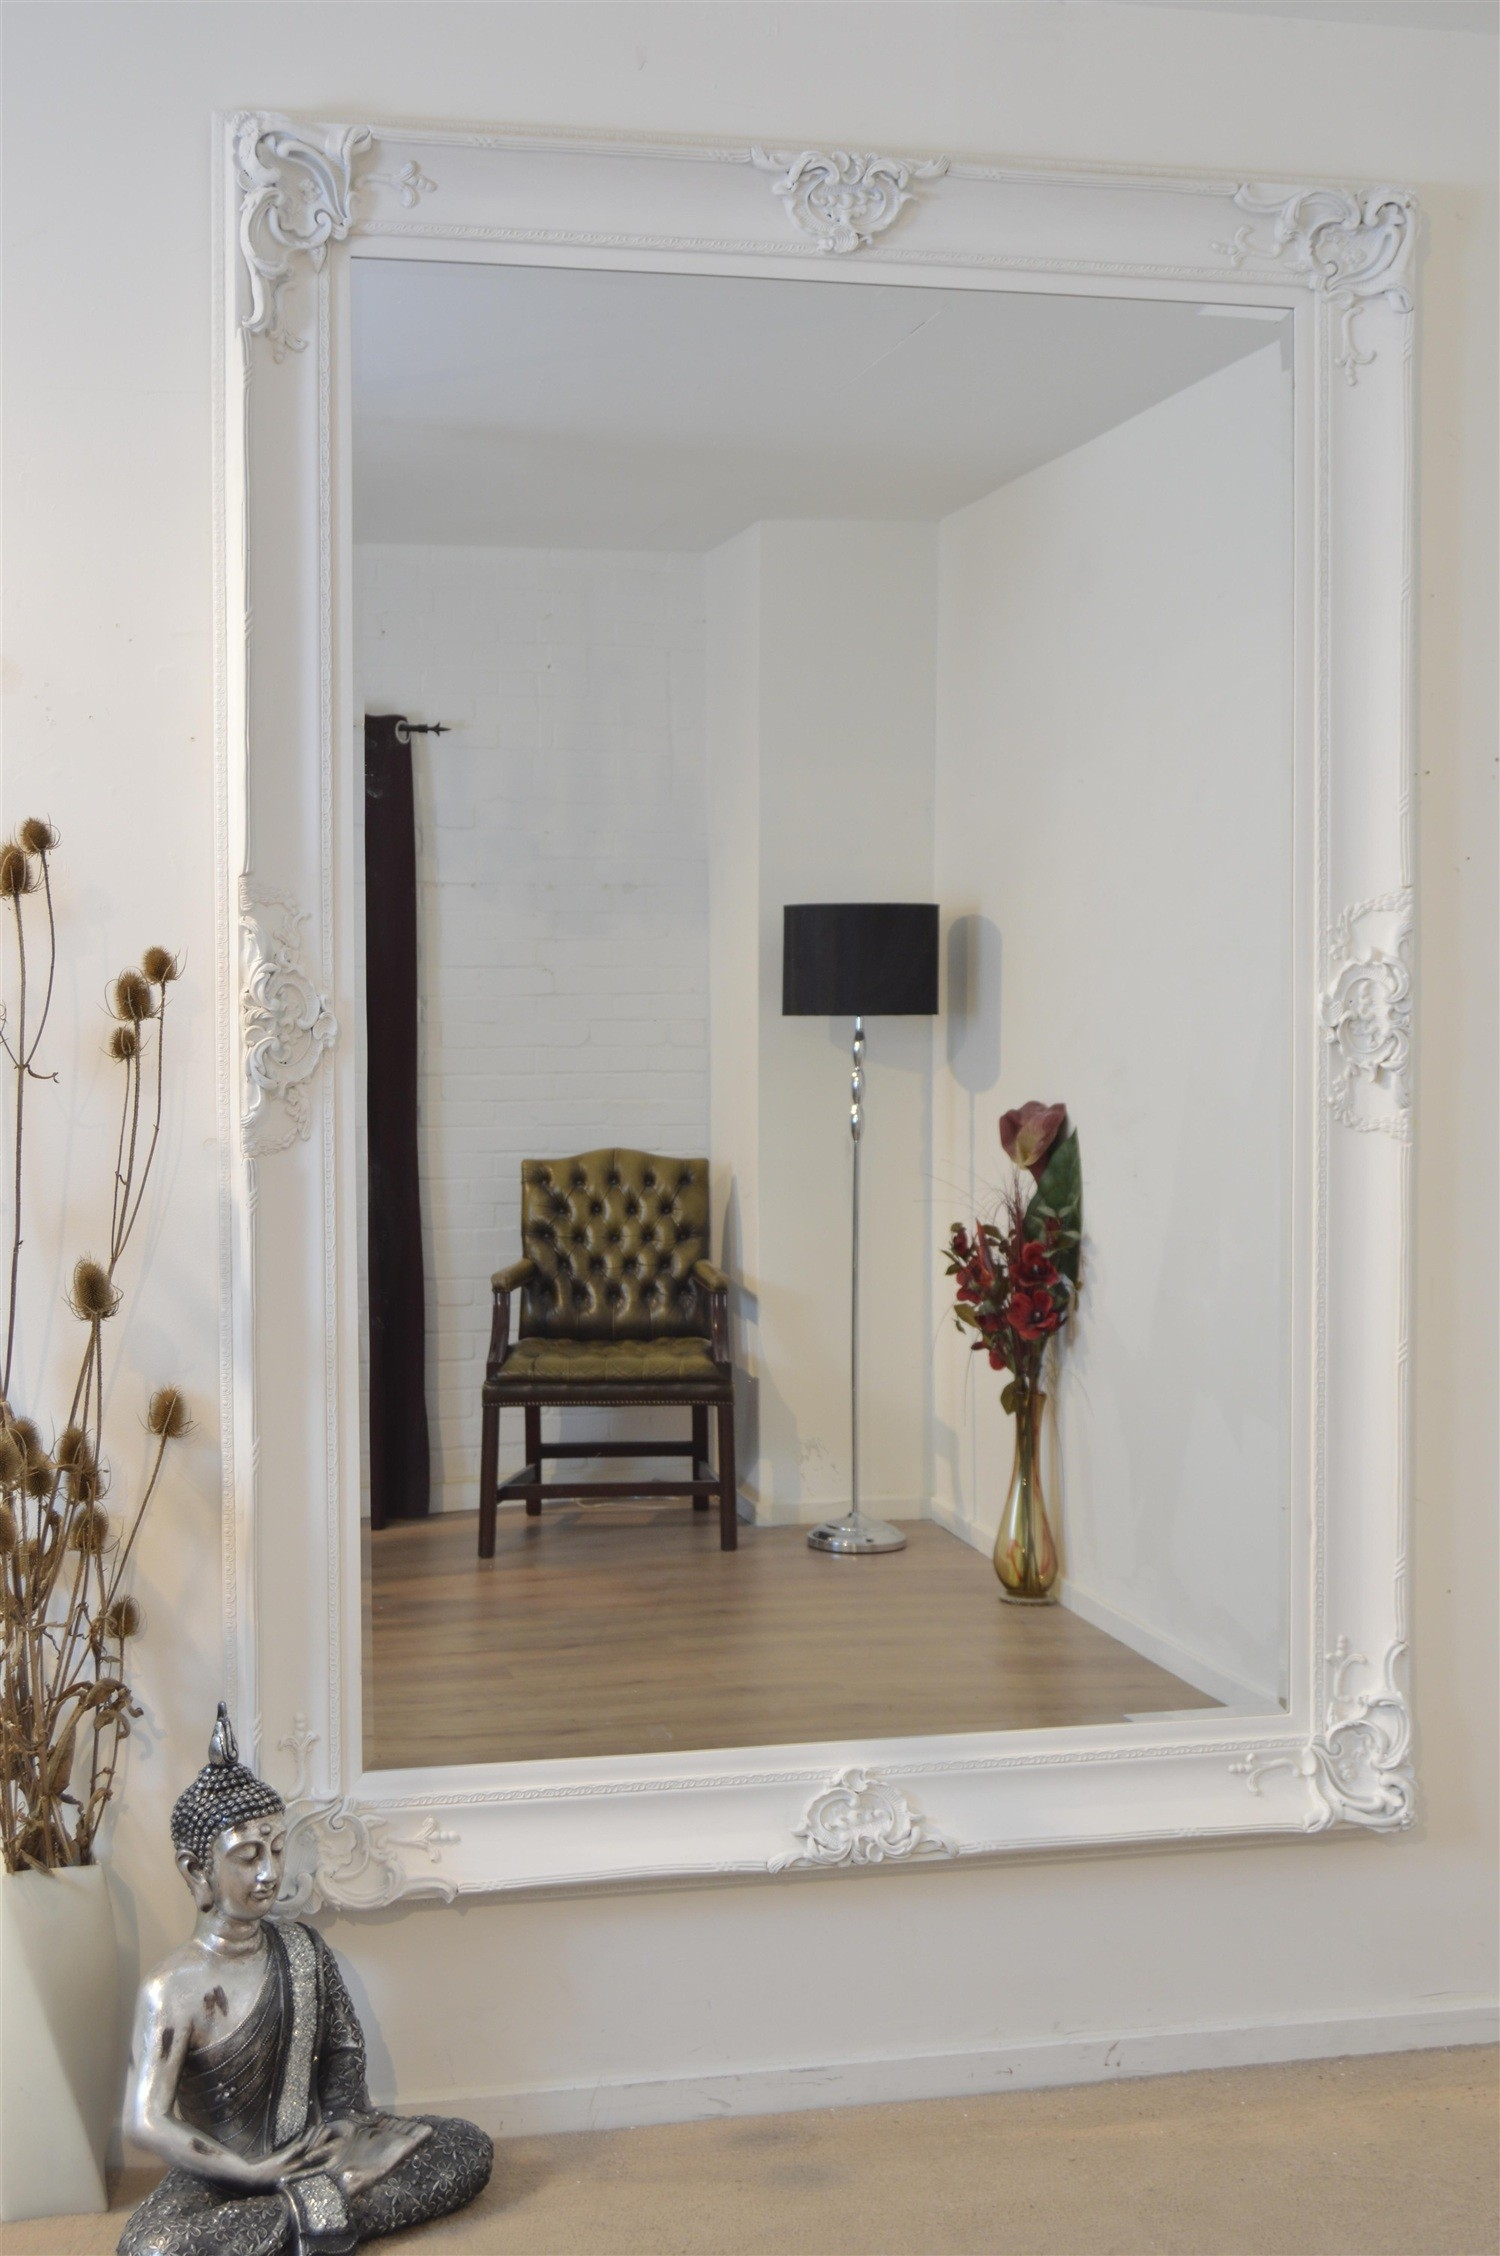 White Decorative Wall Mirror Inarace Throughout Ornate White Mirror (Image 12 of 15)